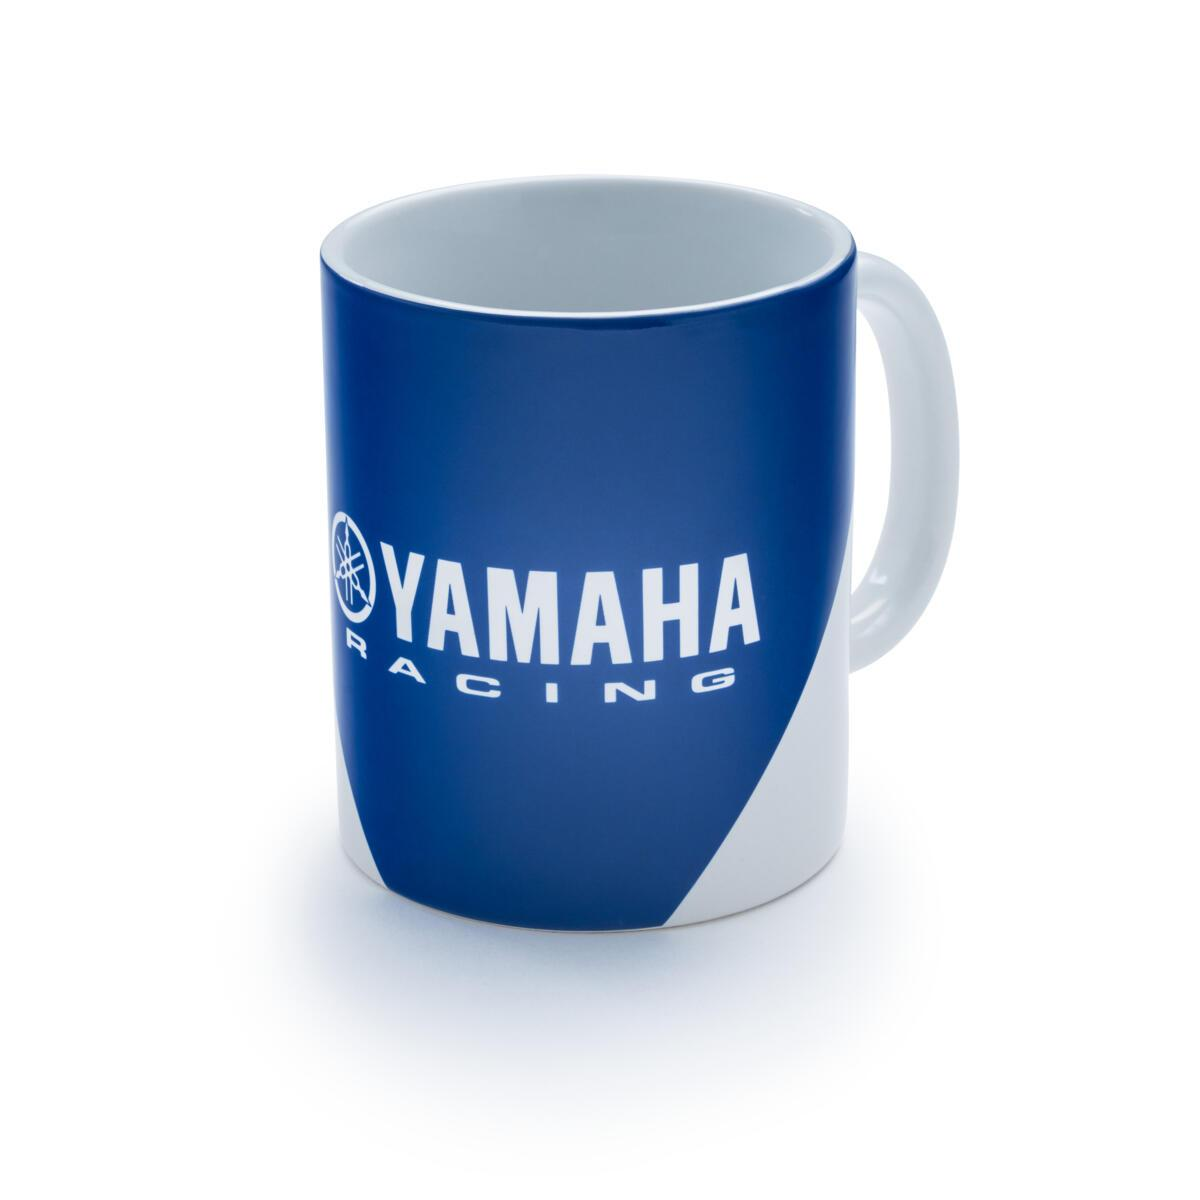 Yamaha Racing ceramic mug